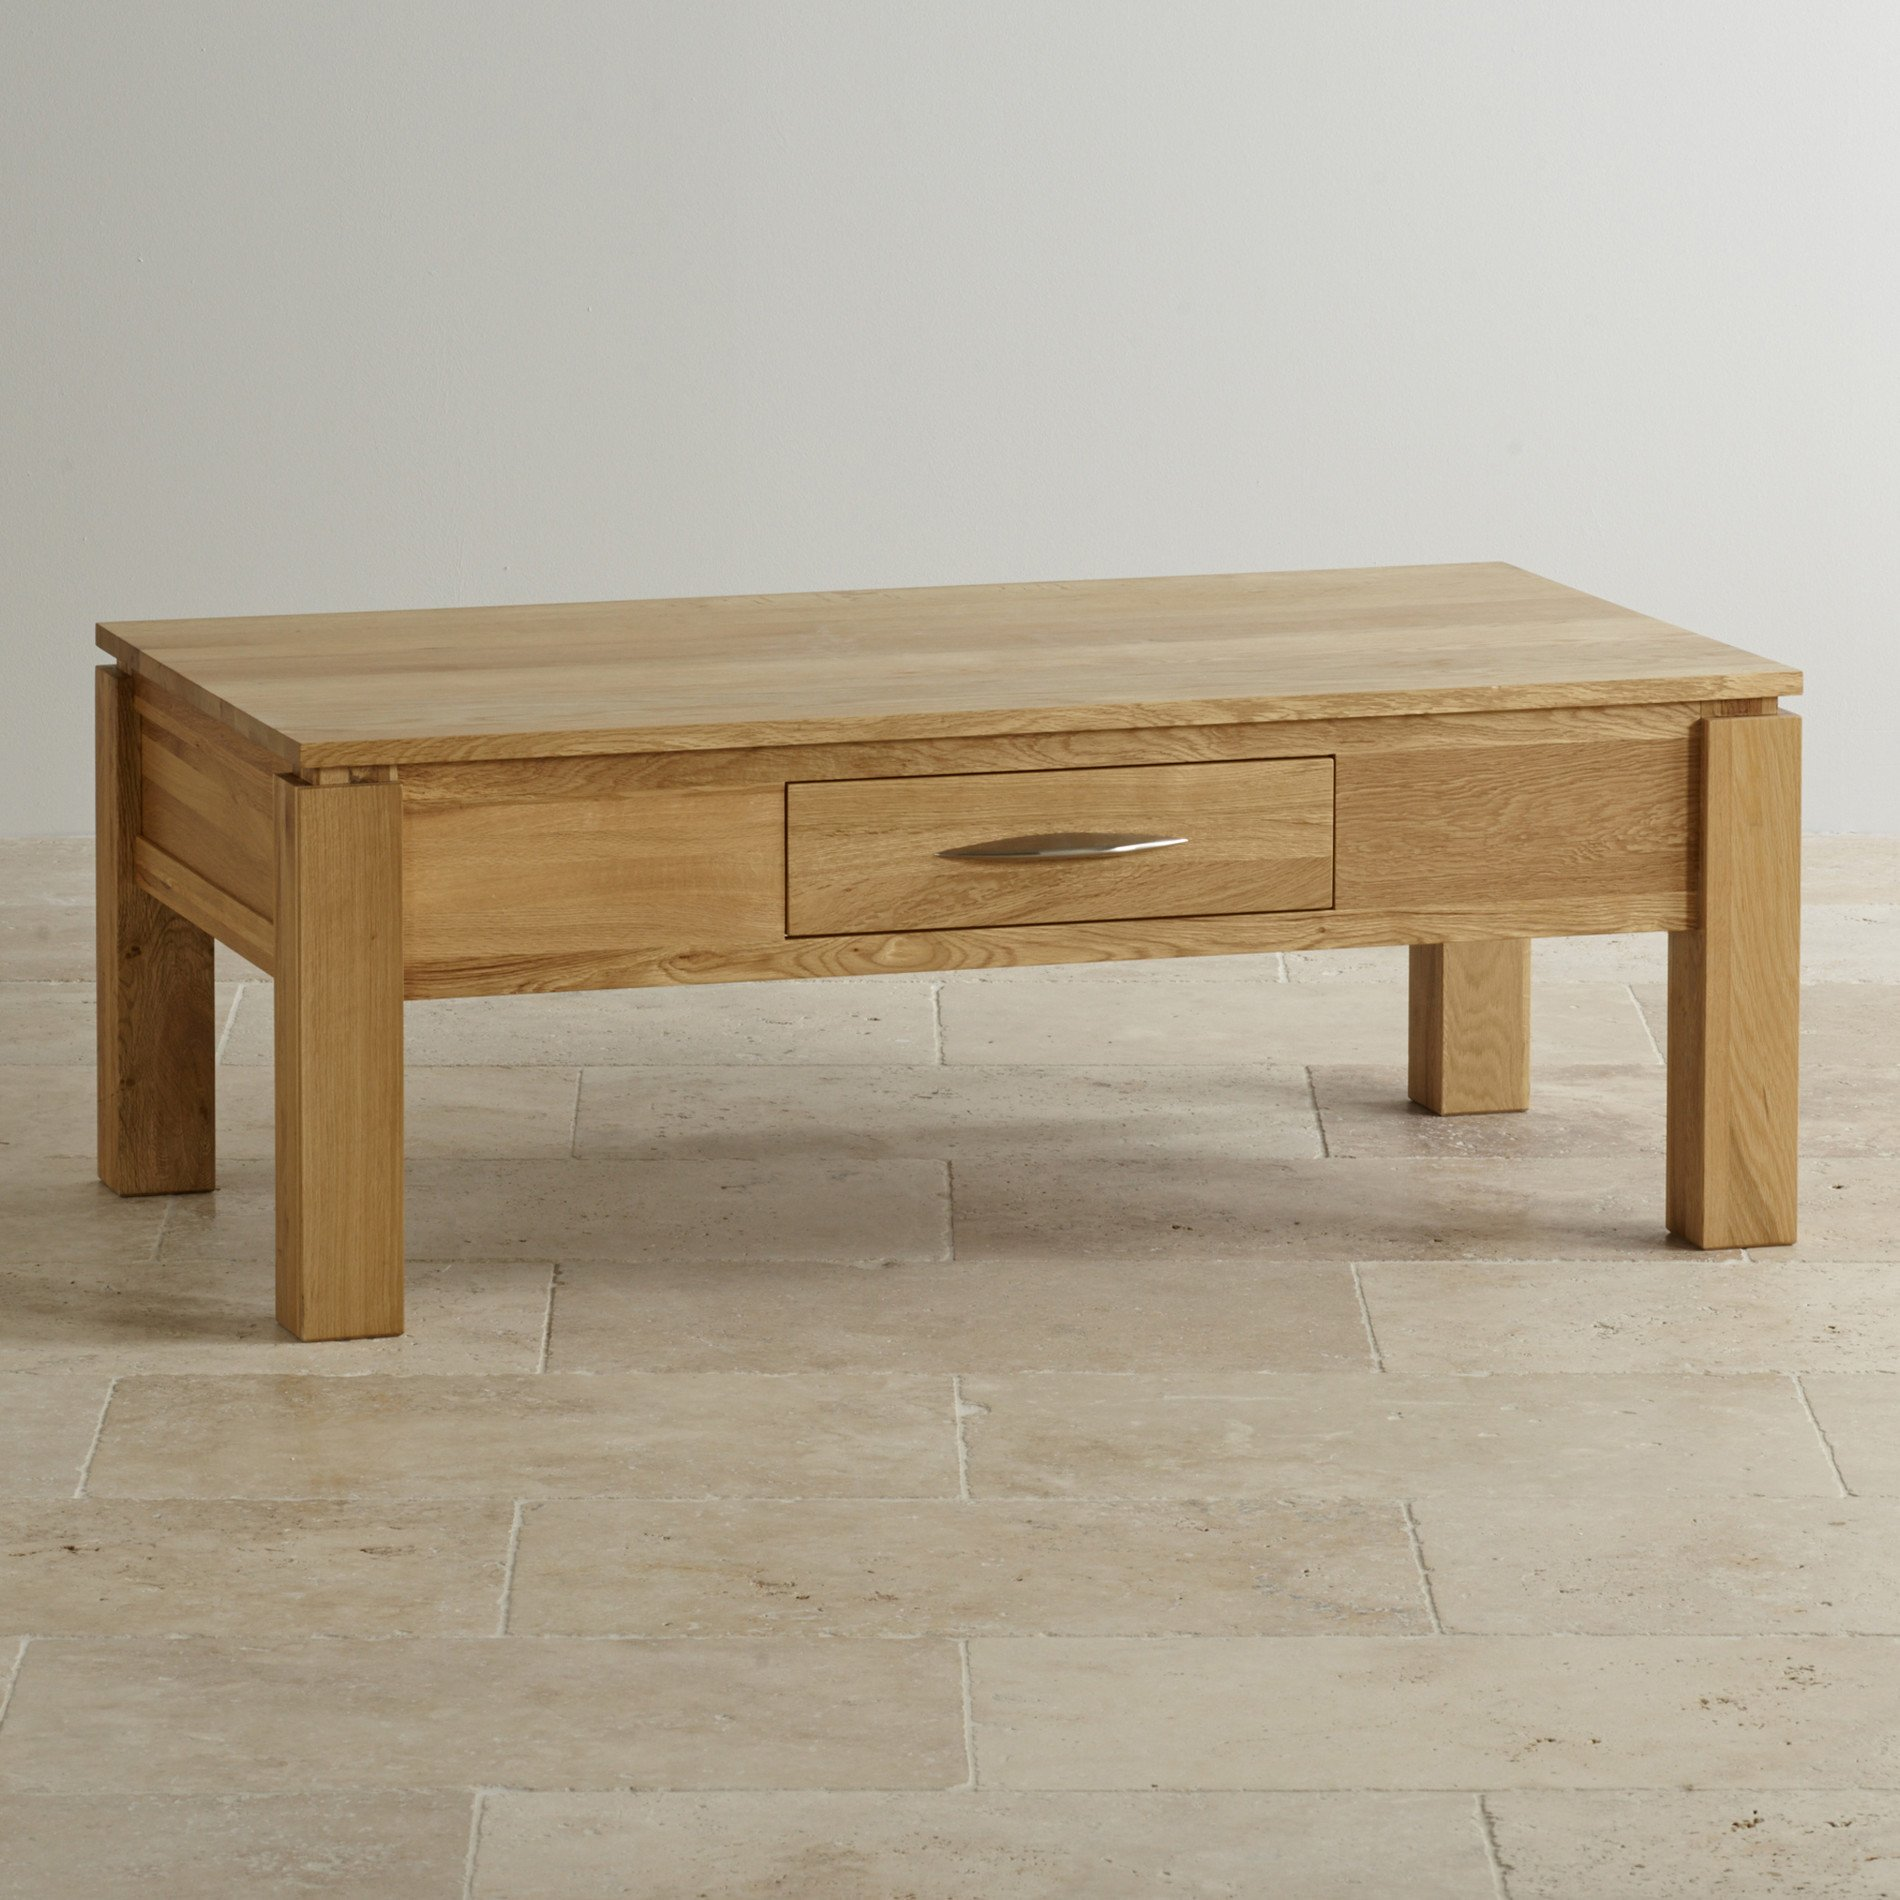 Galway Coffee Table in Solid Oak